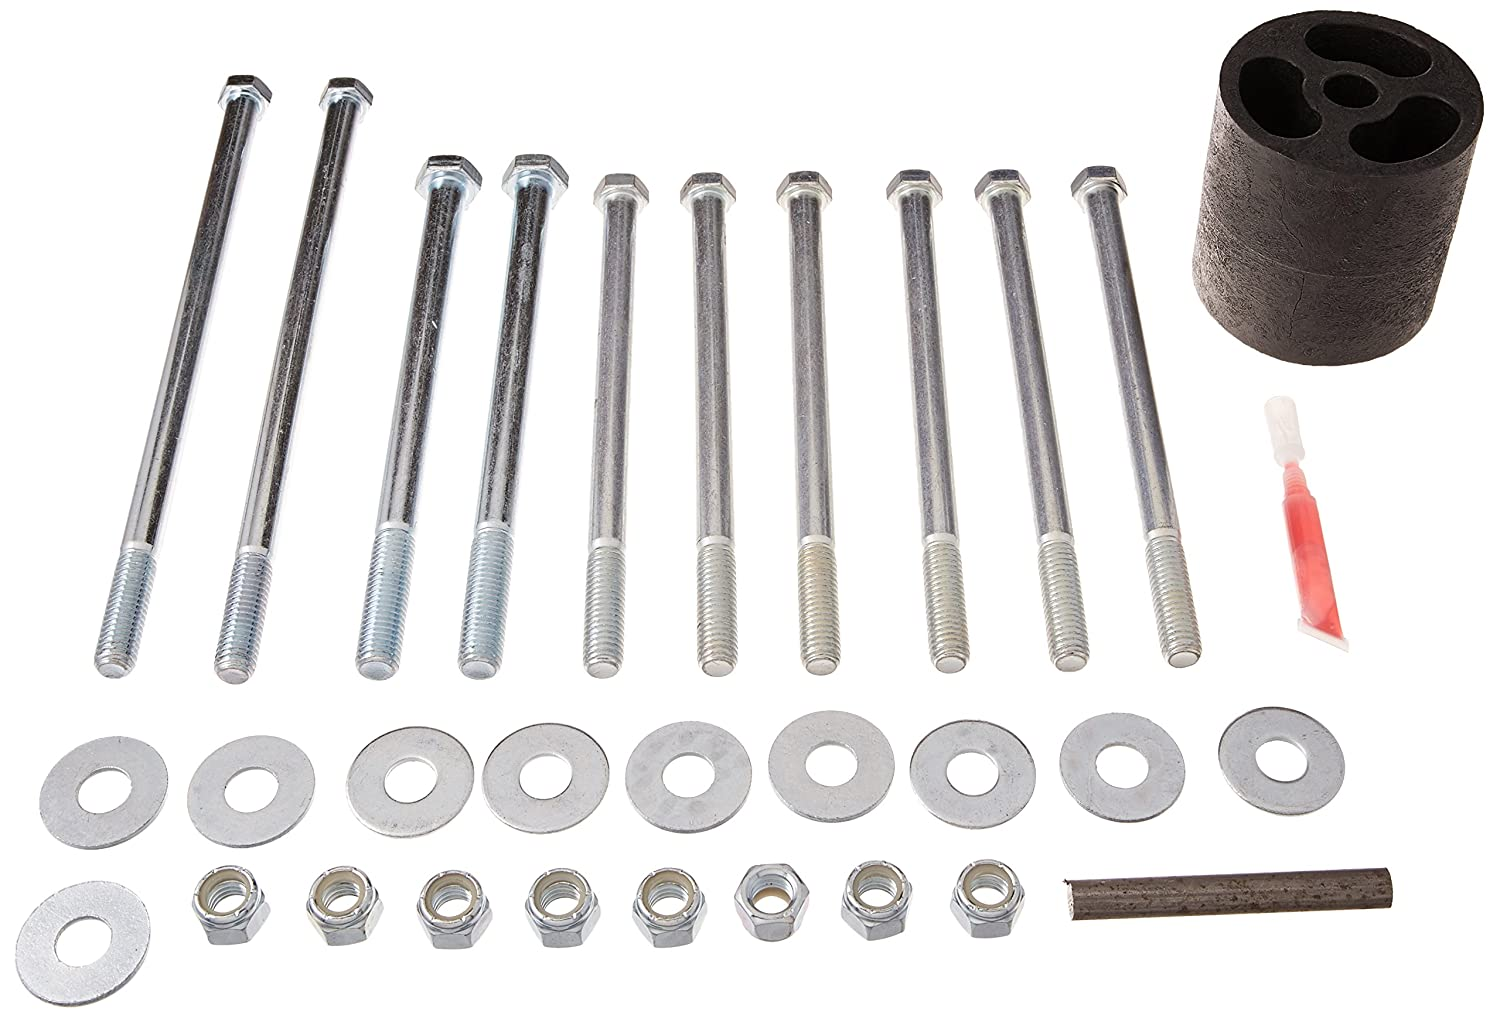 PA783 fits 1987 to 1991 Performance Accessories Made in America Ford Bronco 3 Body Lift Kit